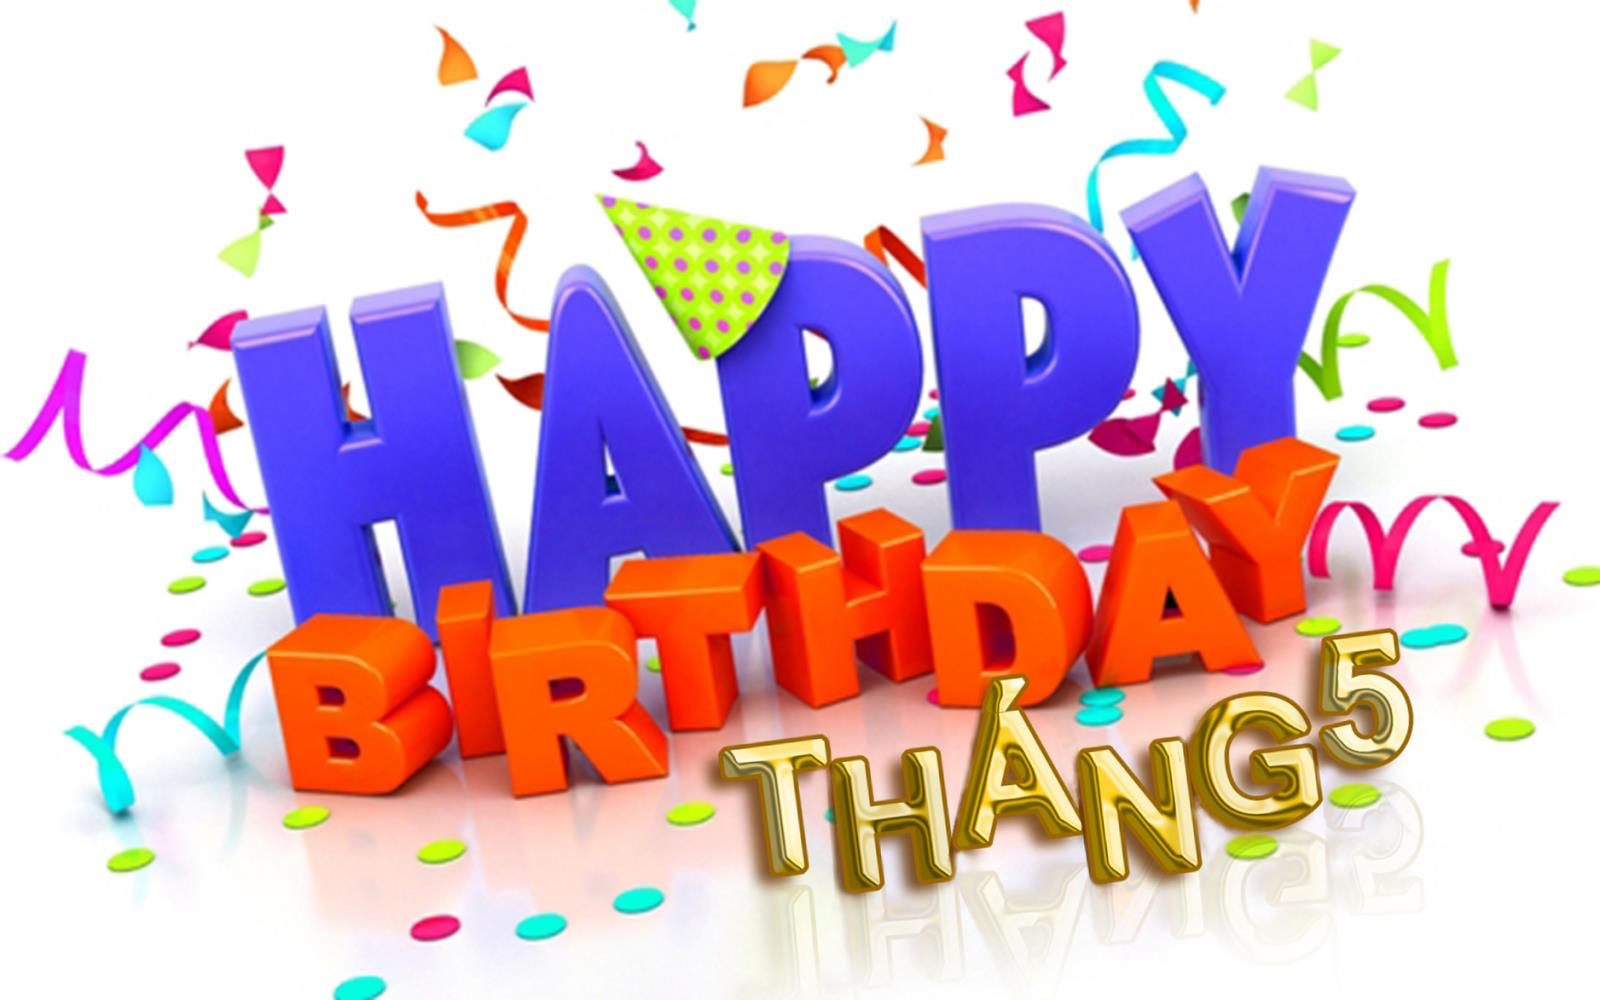 happy birthday png background ; Happy-Birthday-PNG-Image-69639